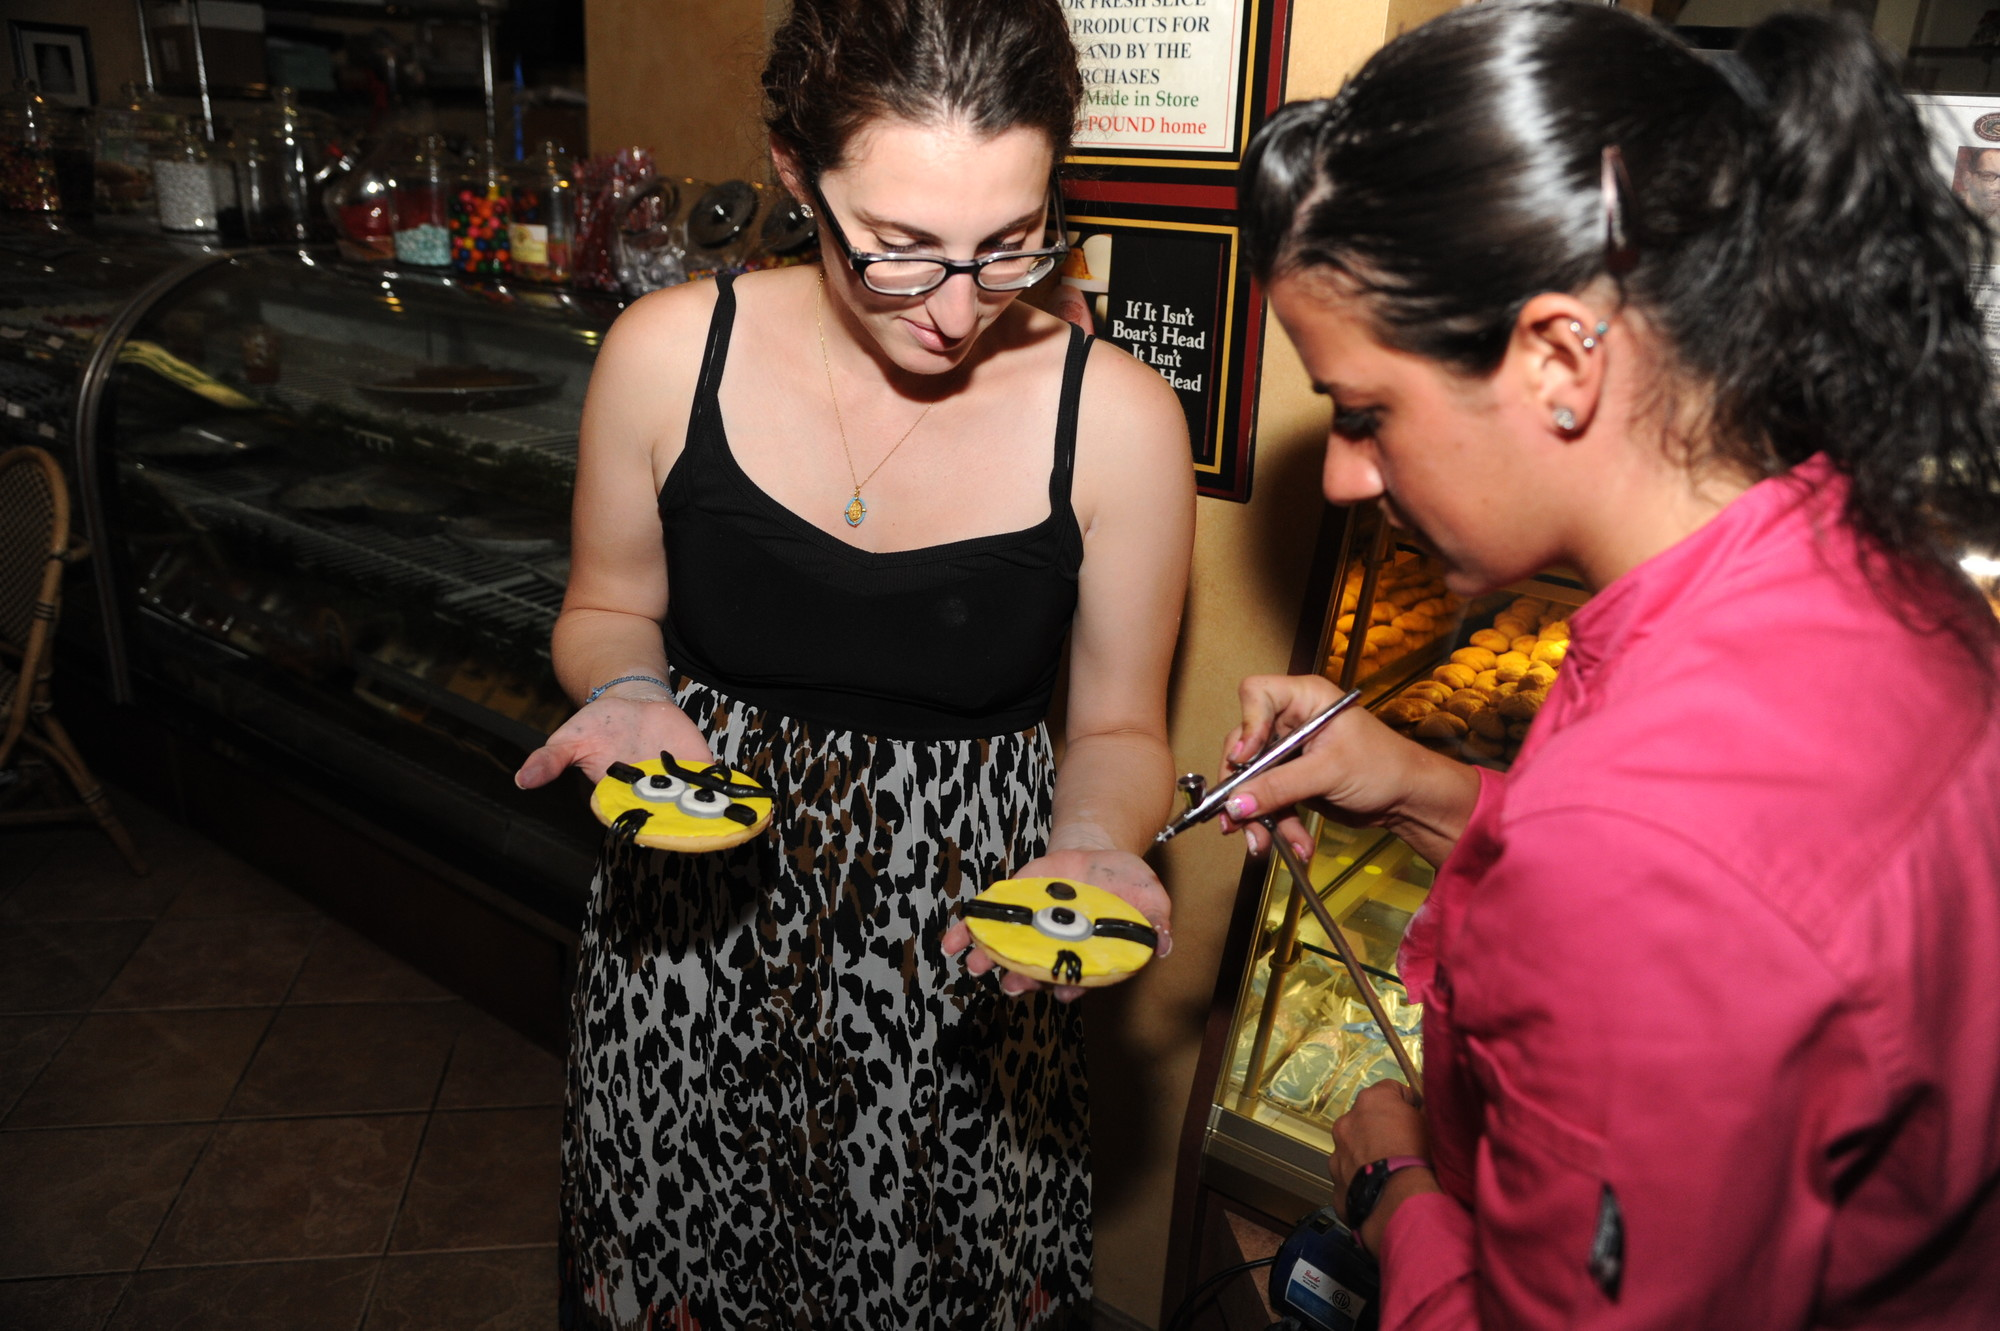 Nadia Vanzan, right, the bakery's executive pastry chef who conducted the class, blew corn starch off Stav Kolitsopoulos's cookies.